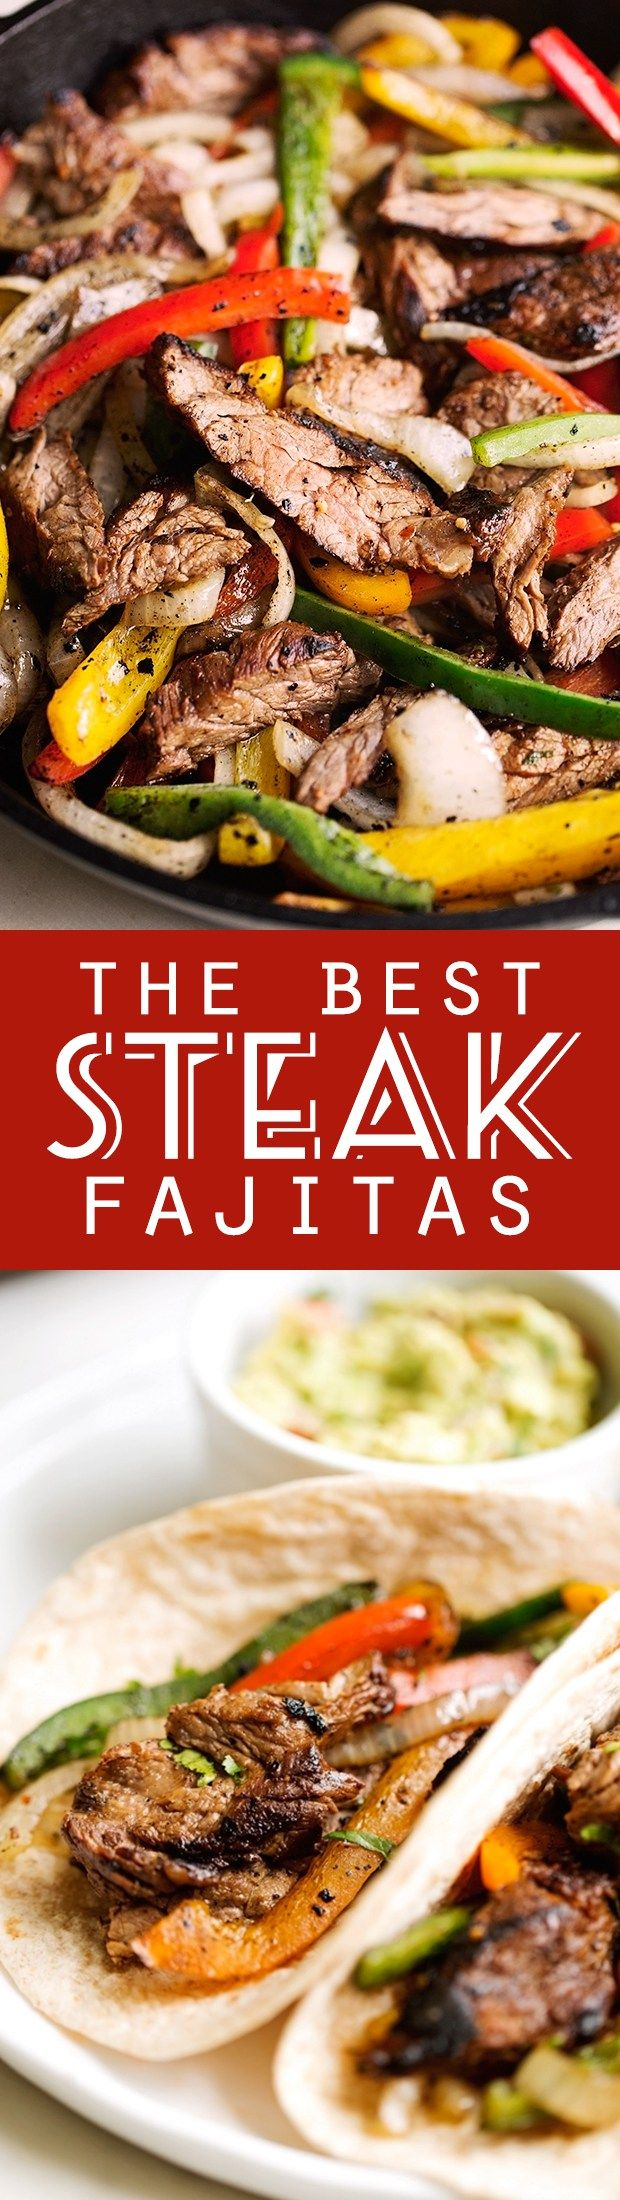 The BEST Steak Fajitas - made with 1 secret ingredient to make them tender and delicious! BETTER than your favorite restaurants! #steakfajitas #fajitas #bestfajitas…